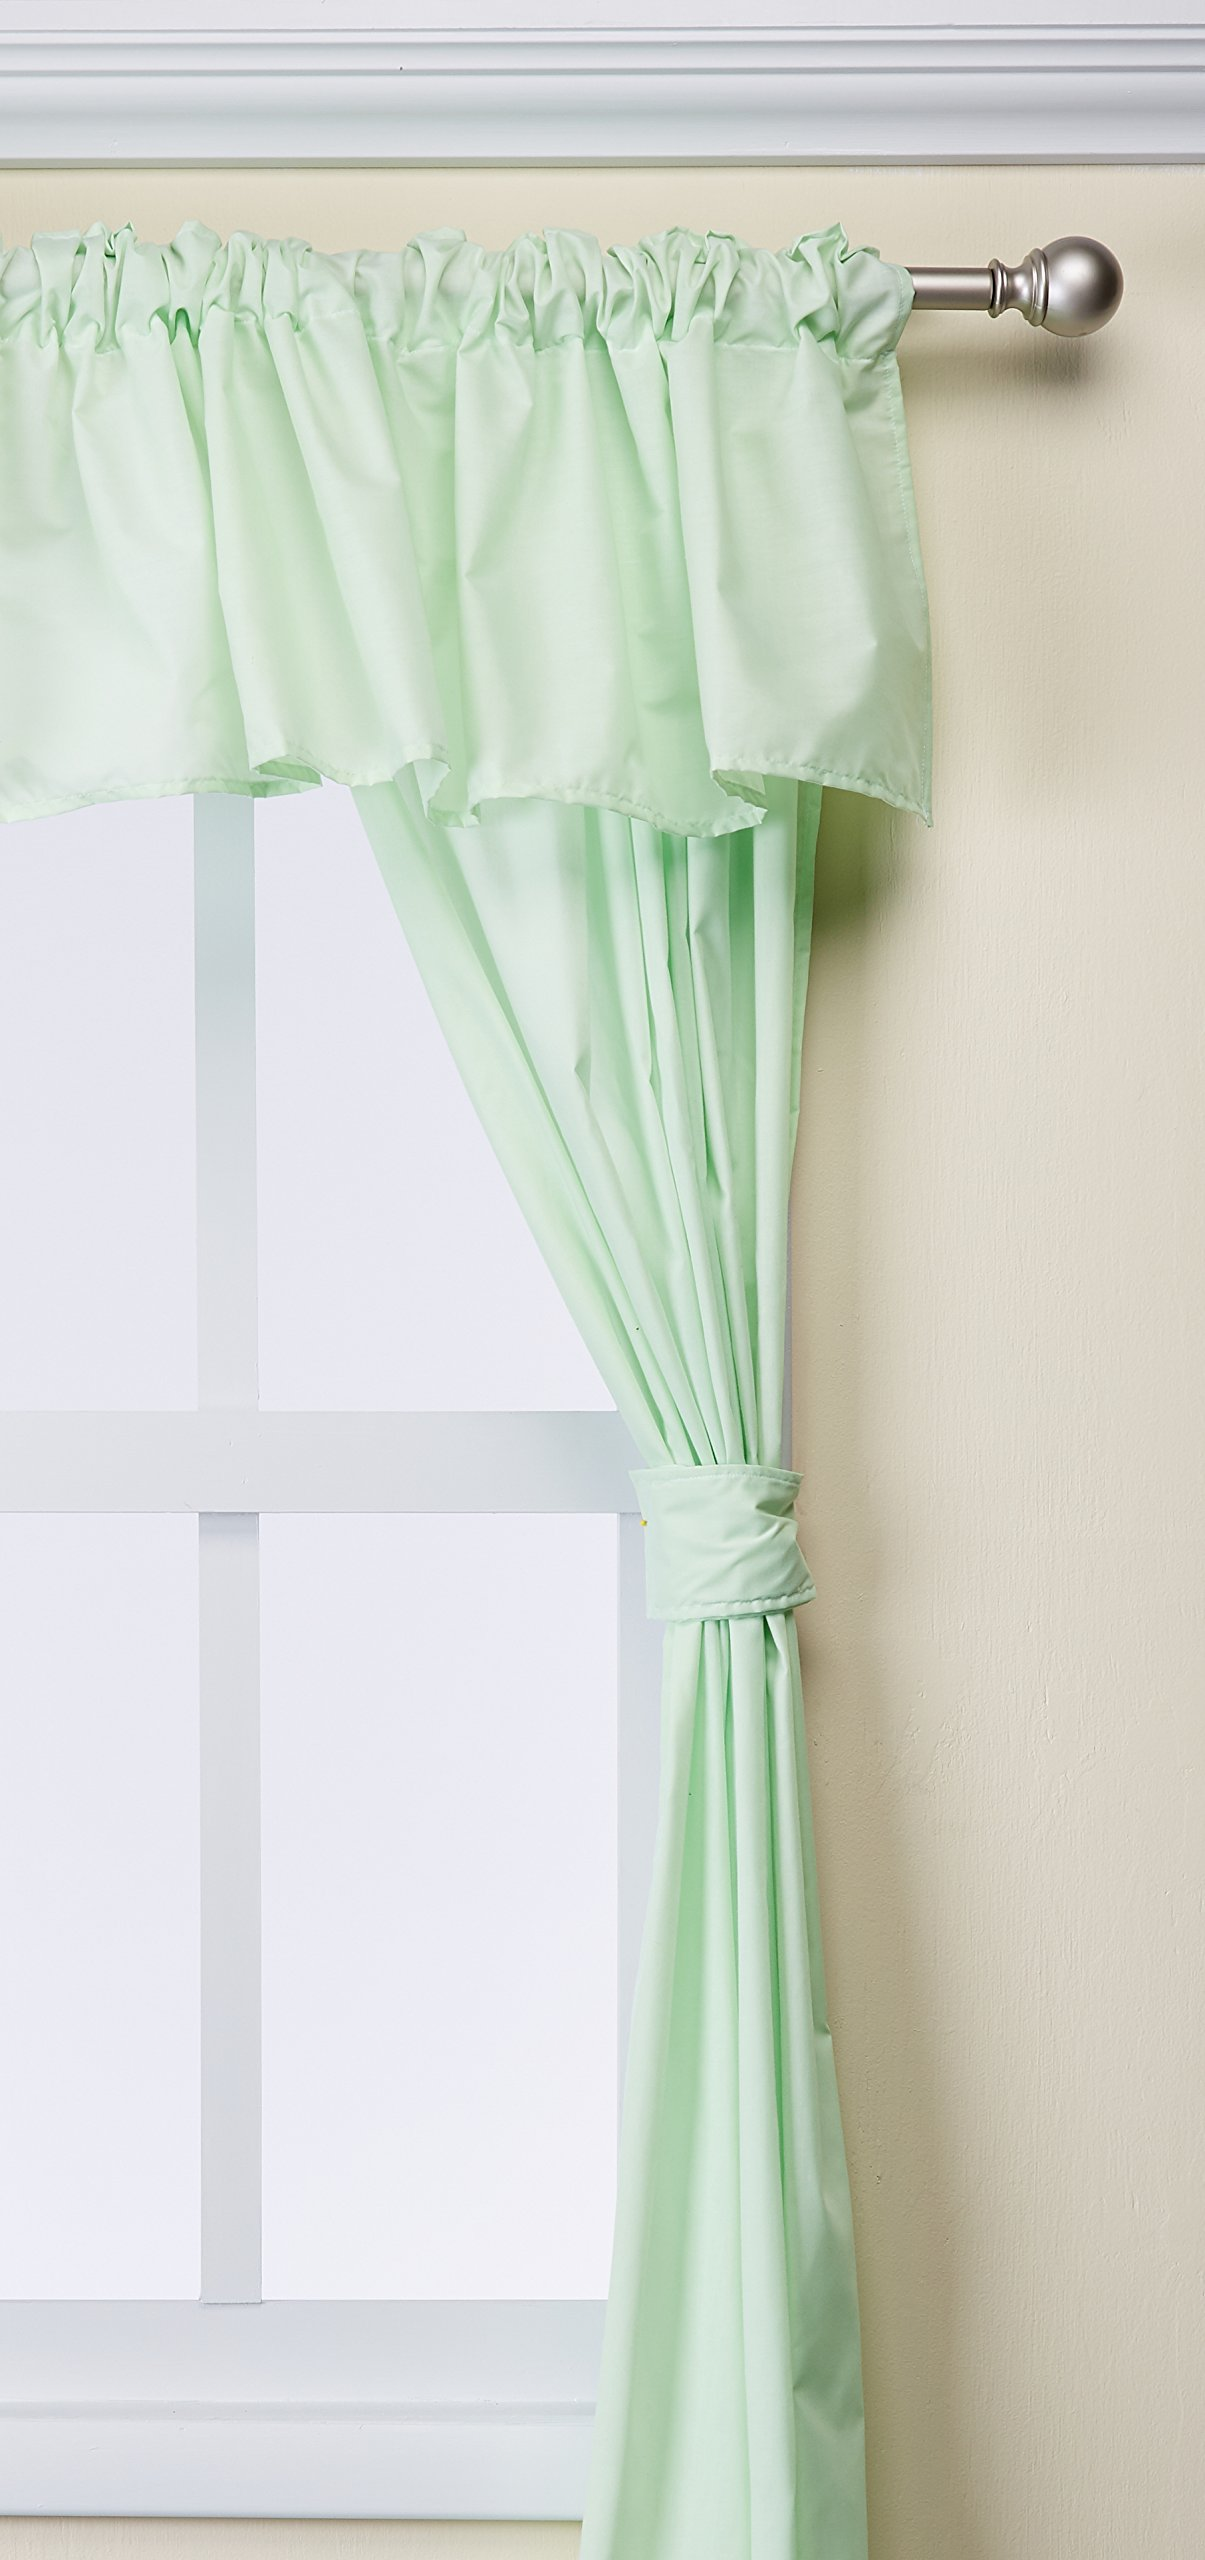 Baby Doll Bedding Solid 5-Piece Window Valance Curtain Set, Mint by BabyDoll Bedding